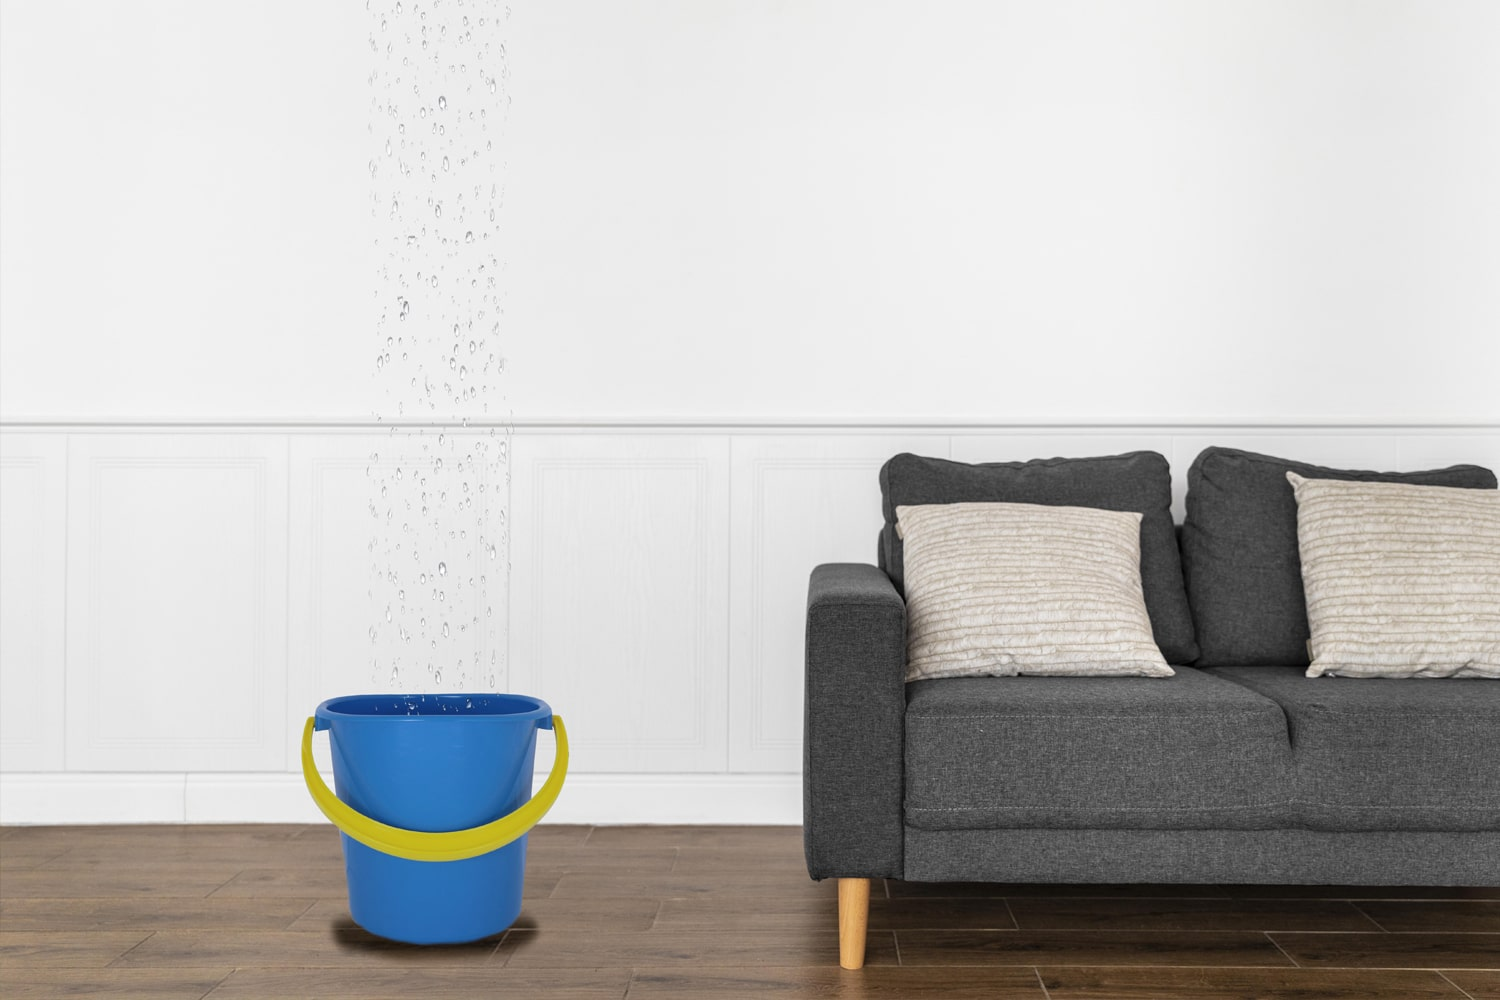 Bucket in living room catching water from roof leak